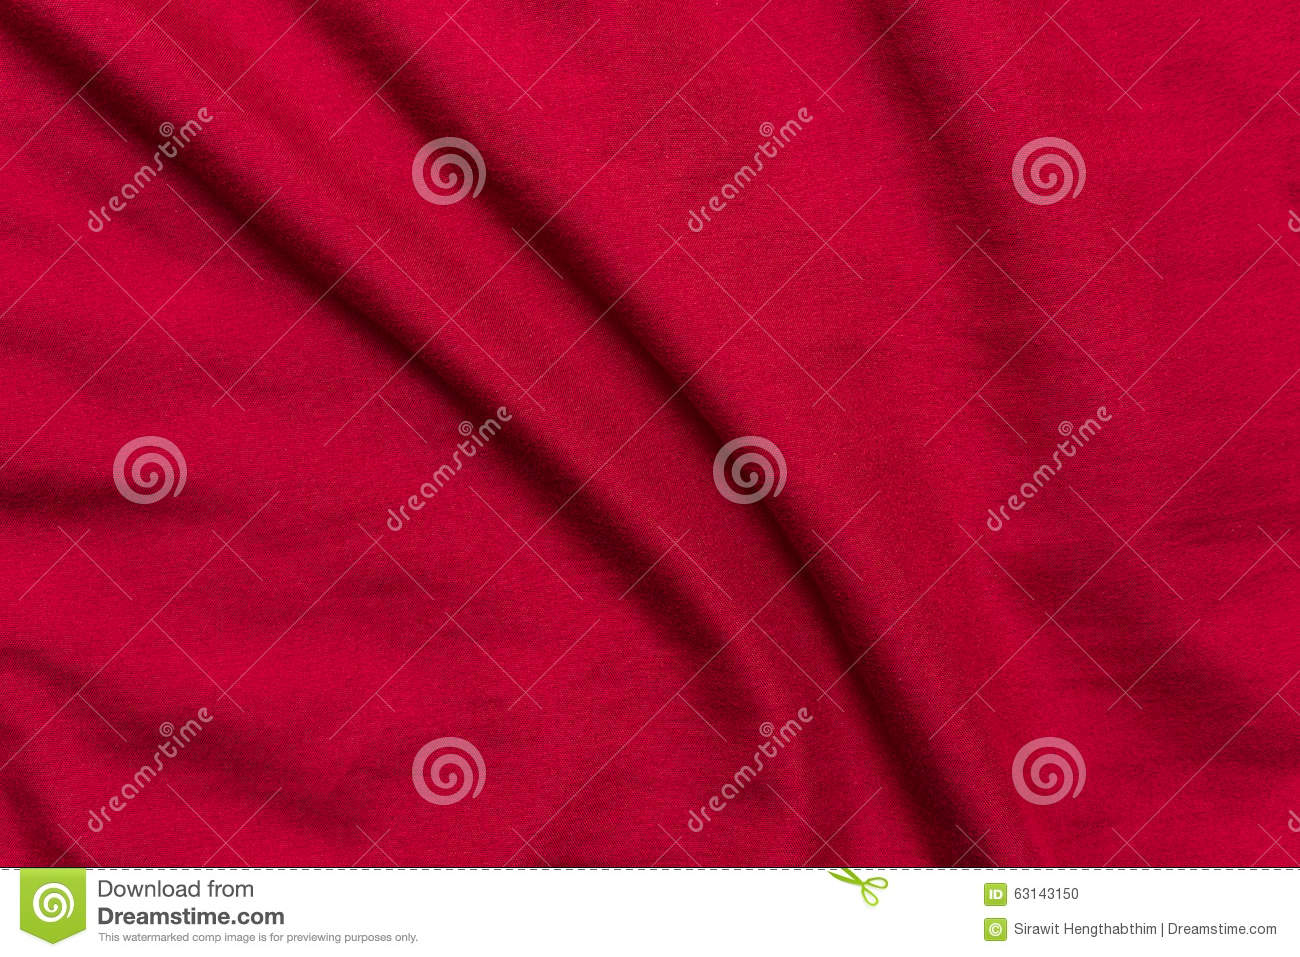 Red bed sheets background texture